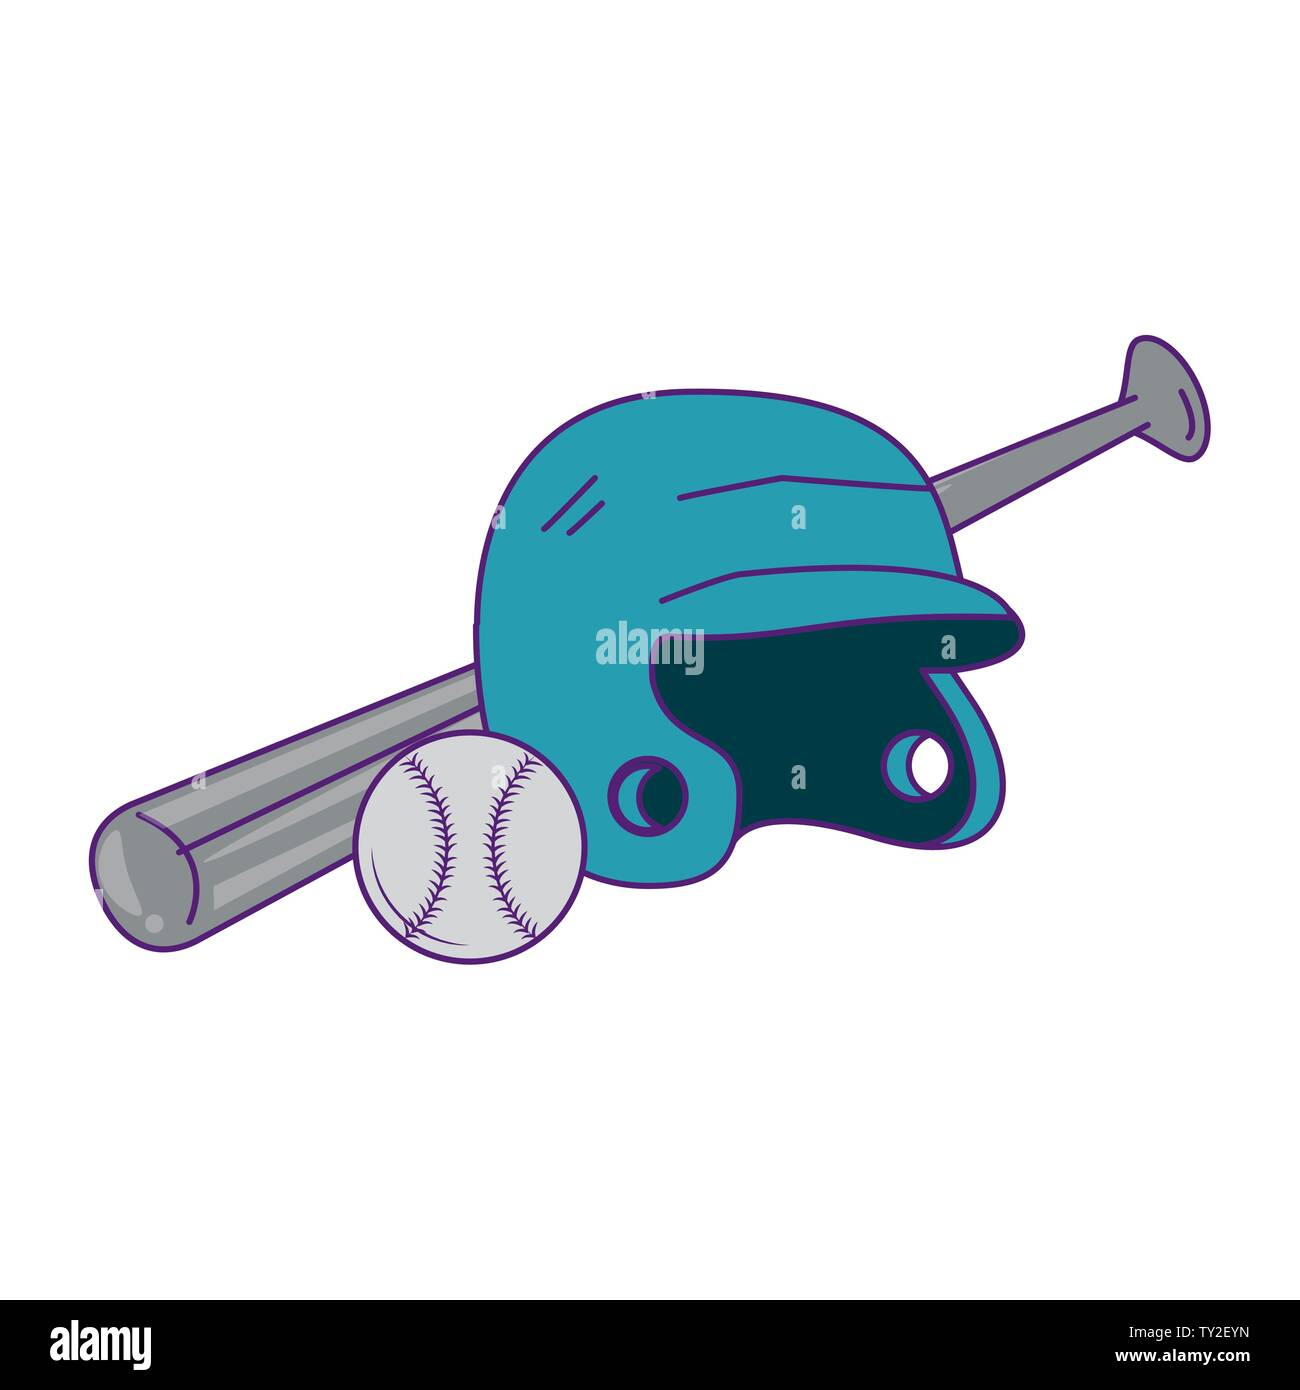 Baseball equiment Elemente Kugel, Teig Helm und Aluminium bat Symbol cartoon Vector Illustration graphic design Stockbild